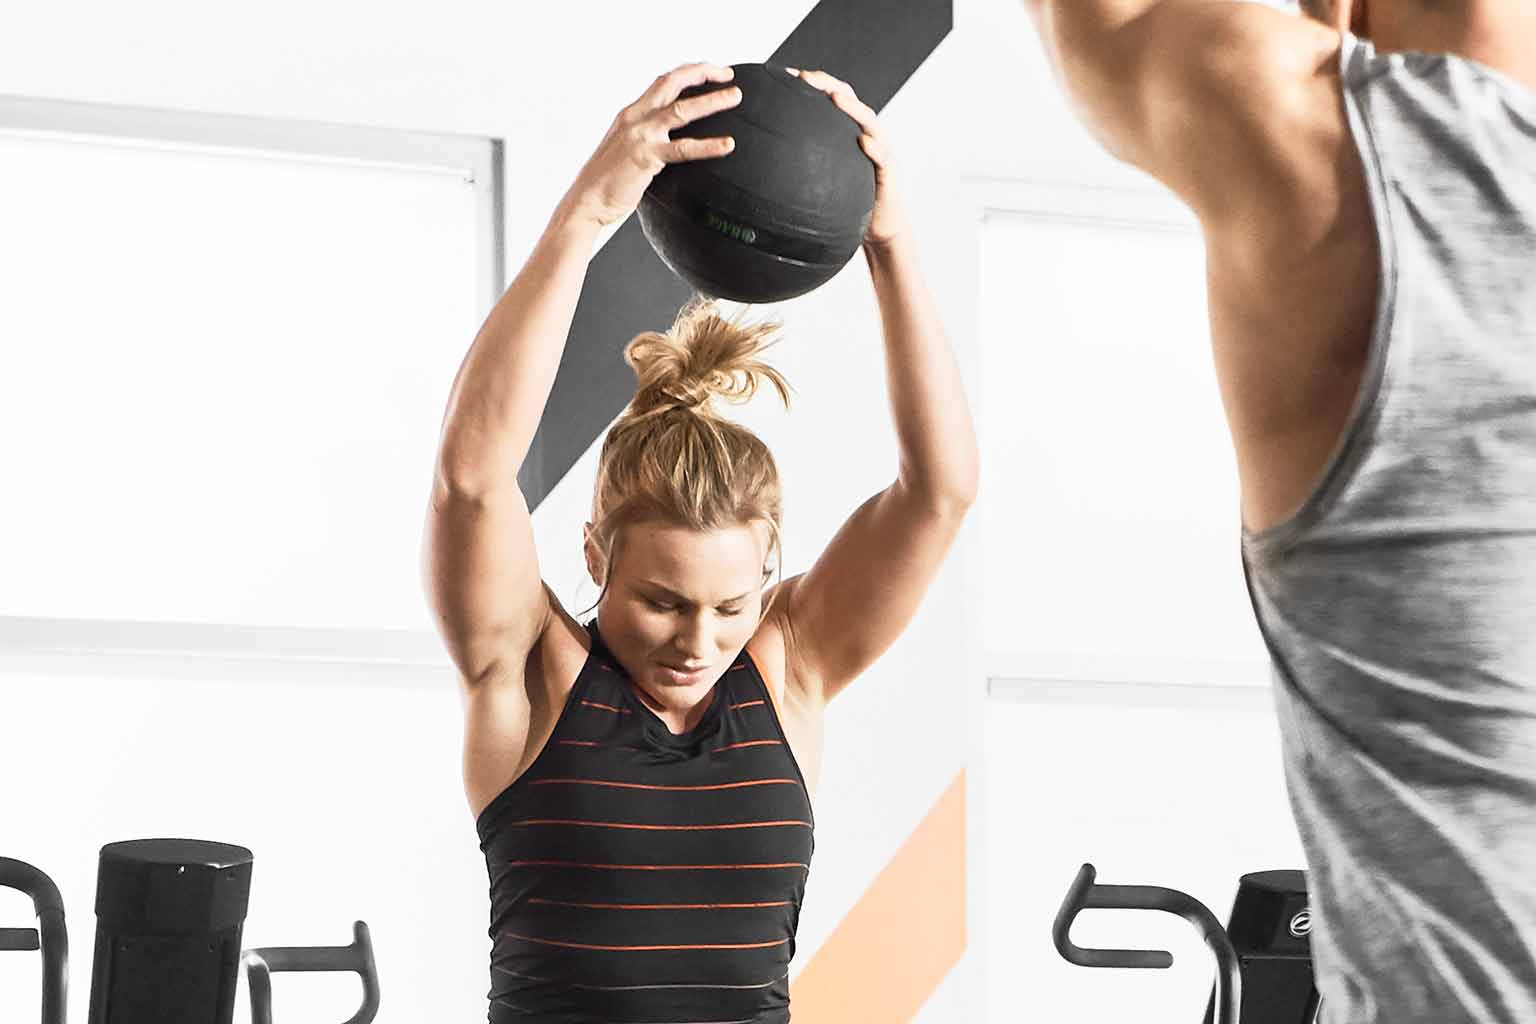 A woman in a black tank top with orange stripes holds a medicine ball over her head as she prepares to slam the ball to the ground